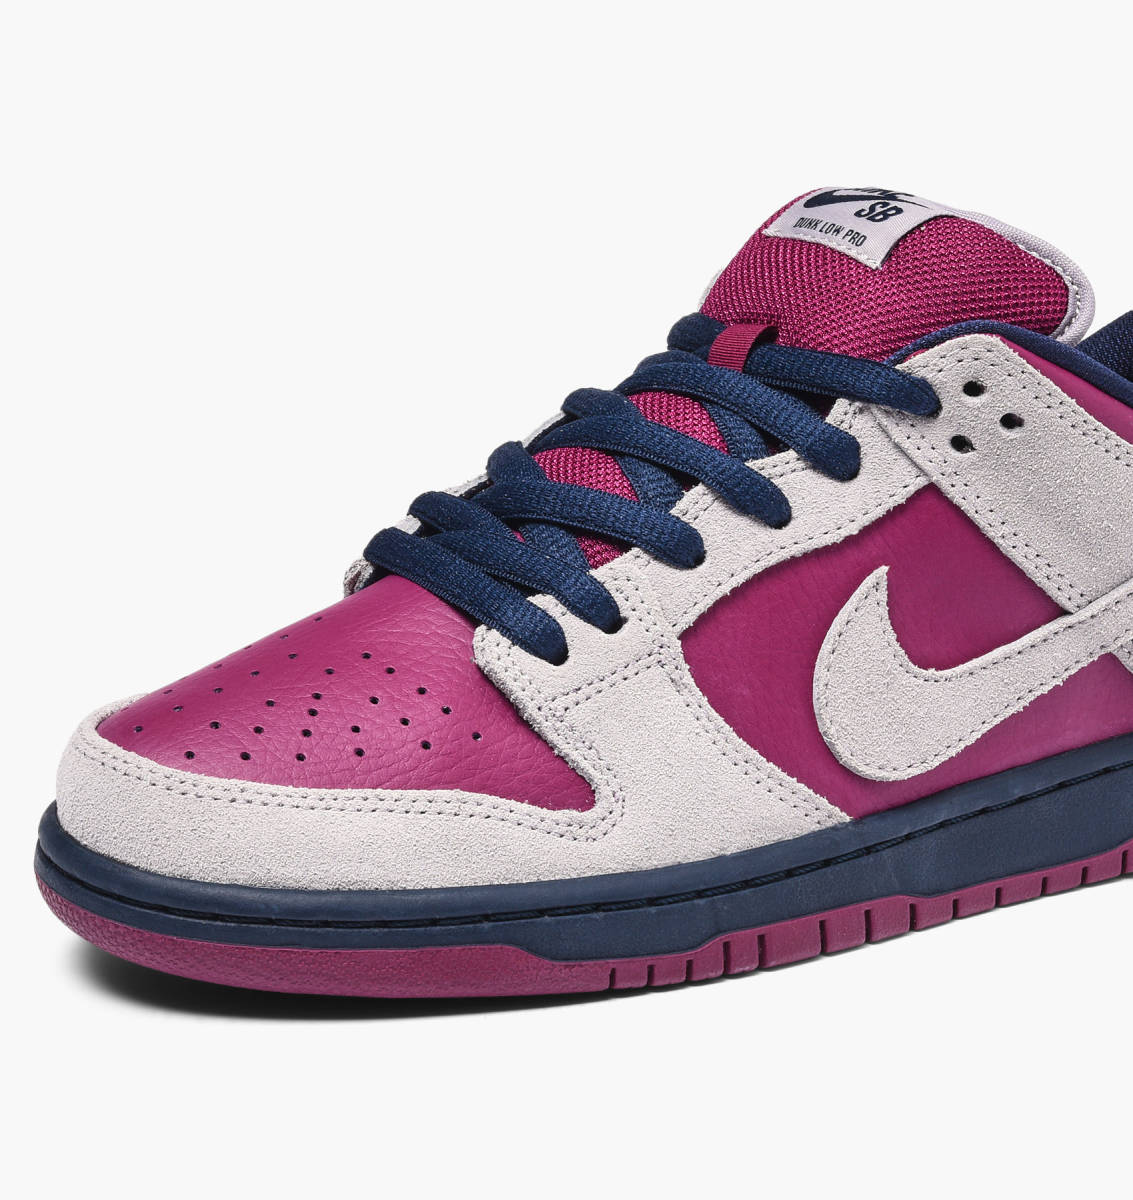 best cheap 06e65 3b045 Now Available: Nike SB Dunk Low Pro